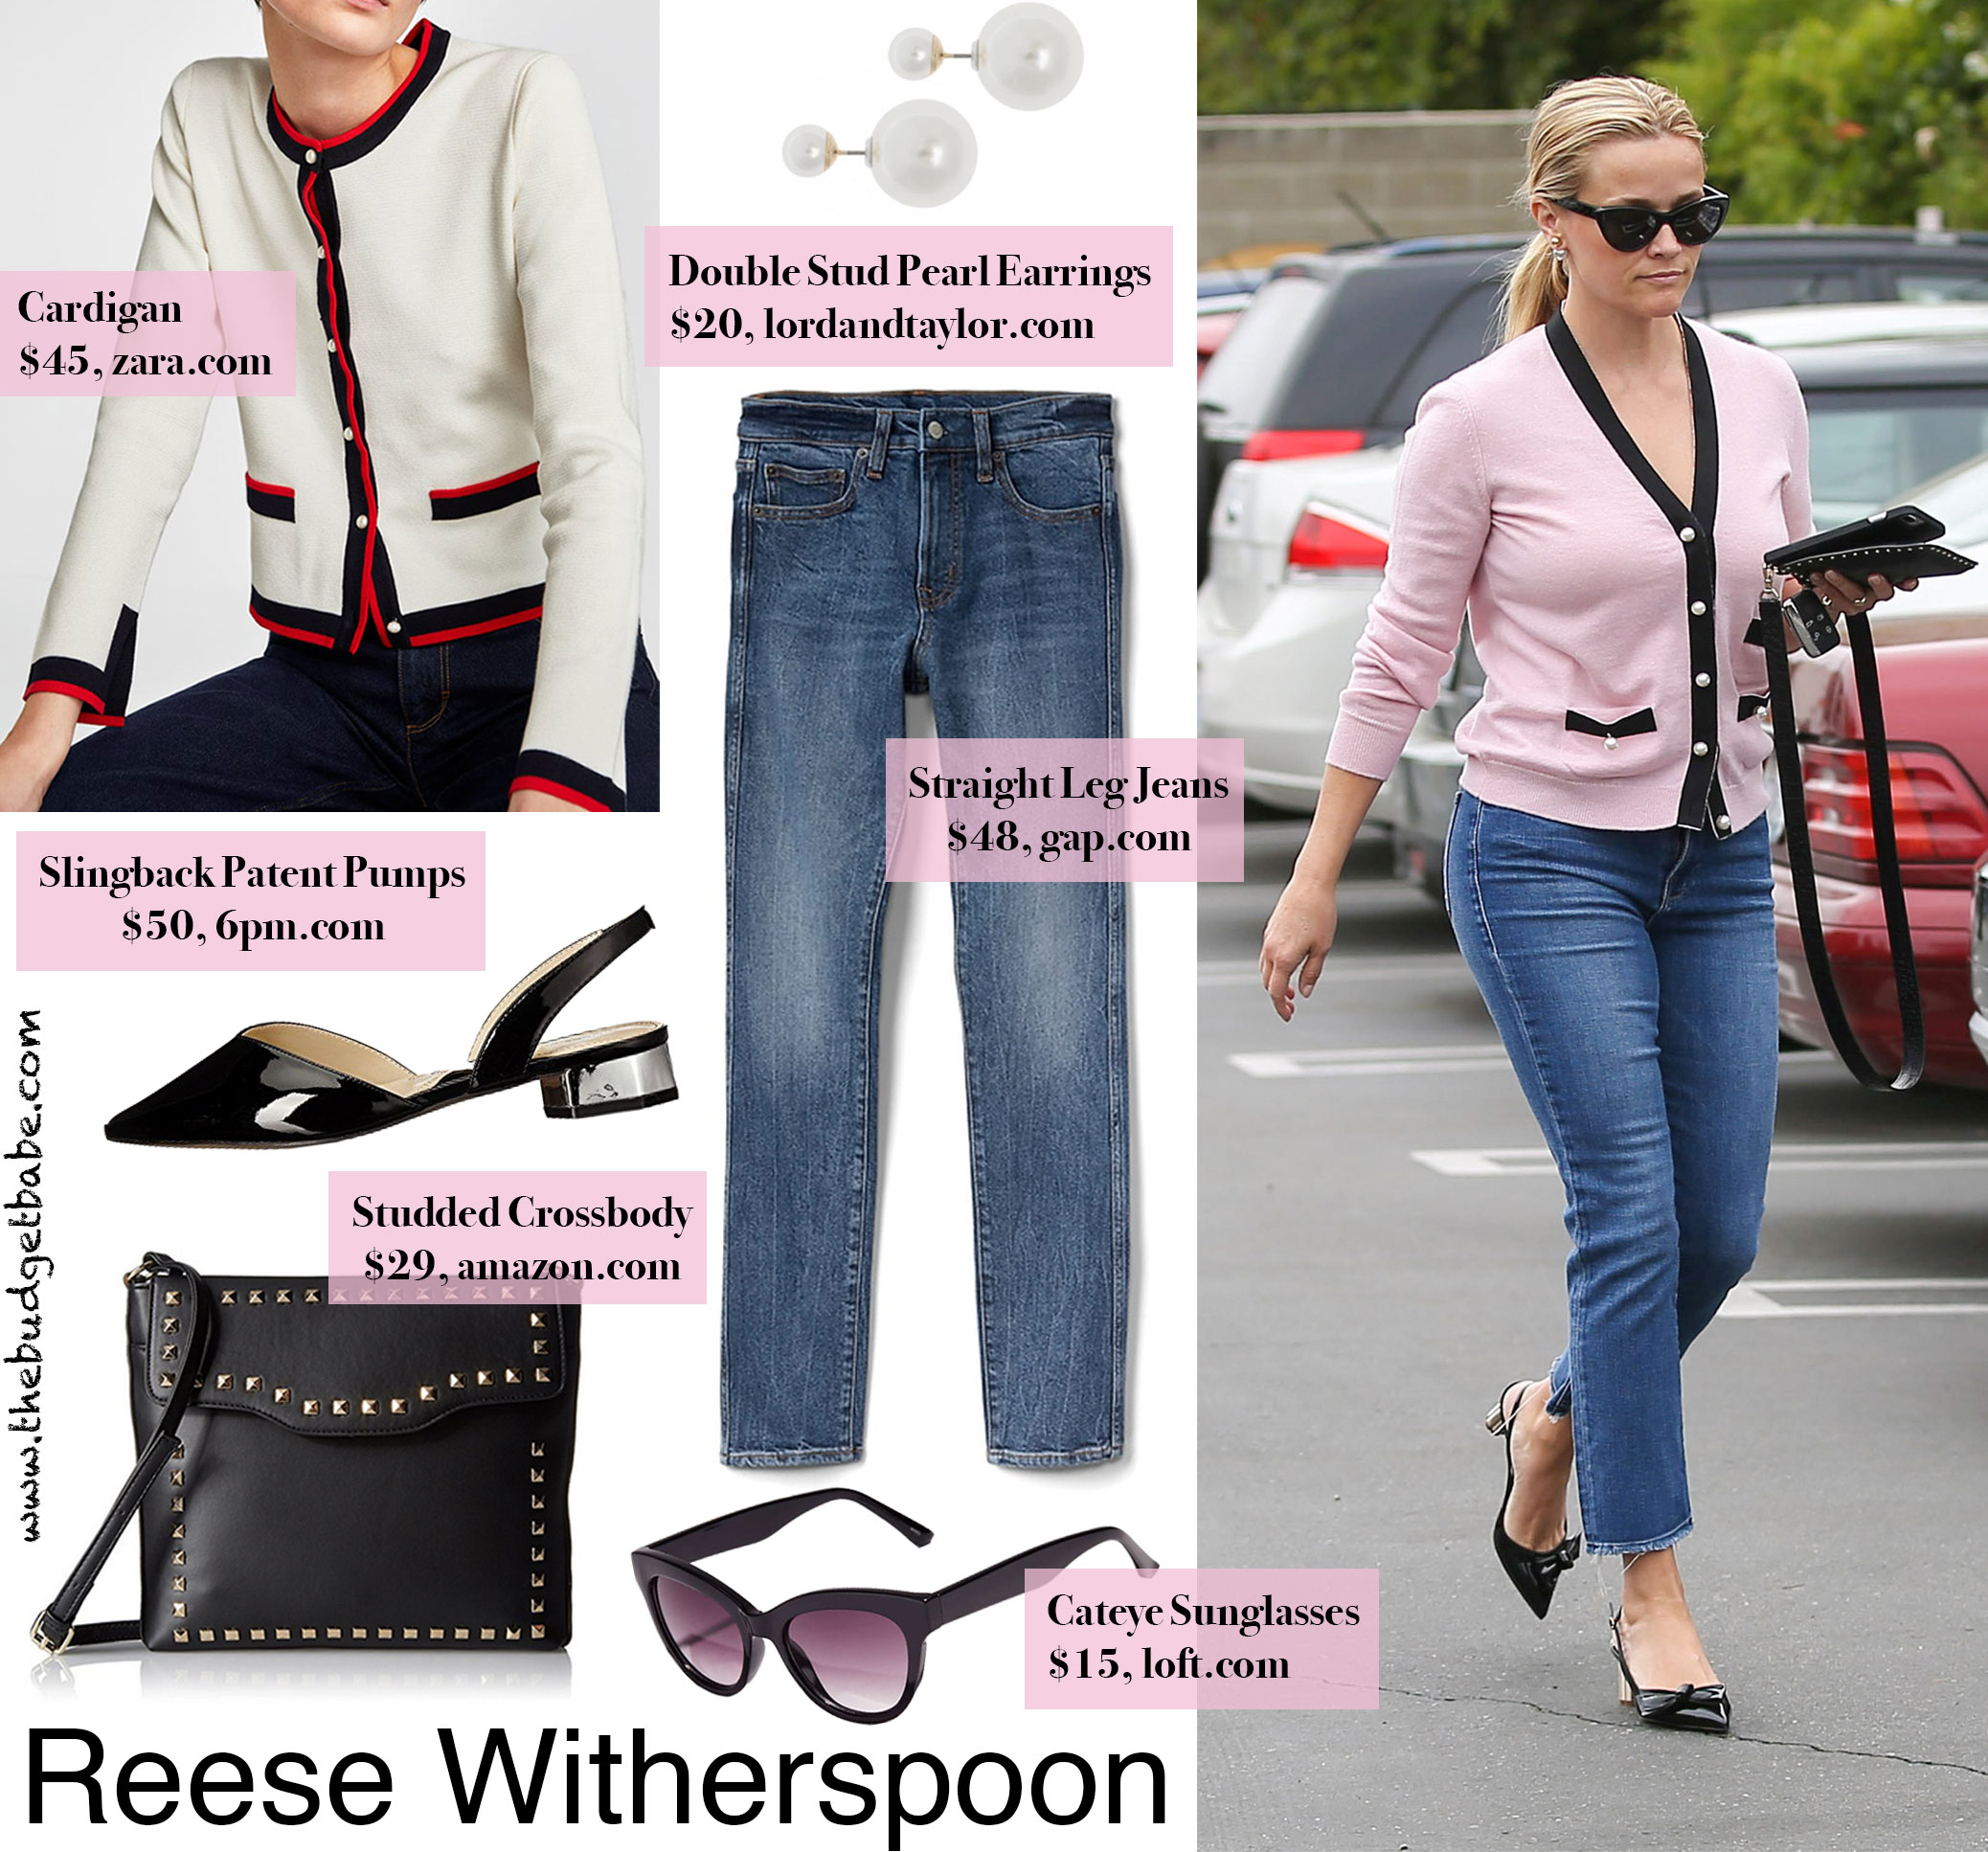 Reese Witherspoon Barneys Cardigan Look for Less